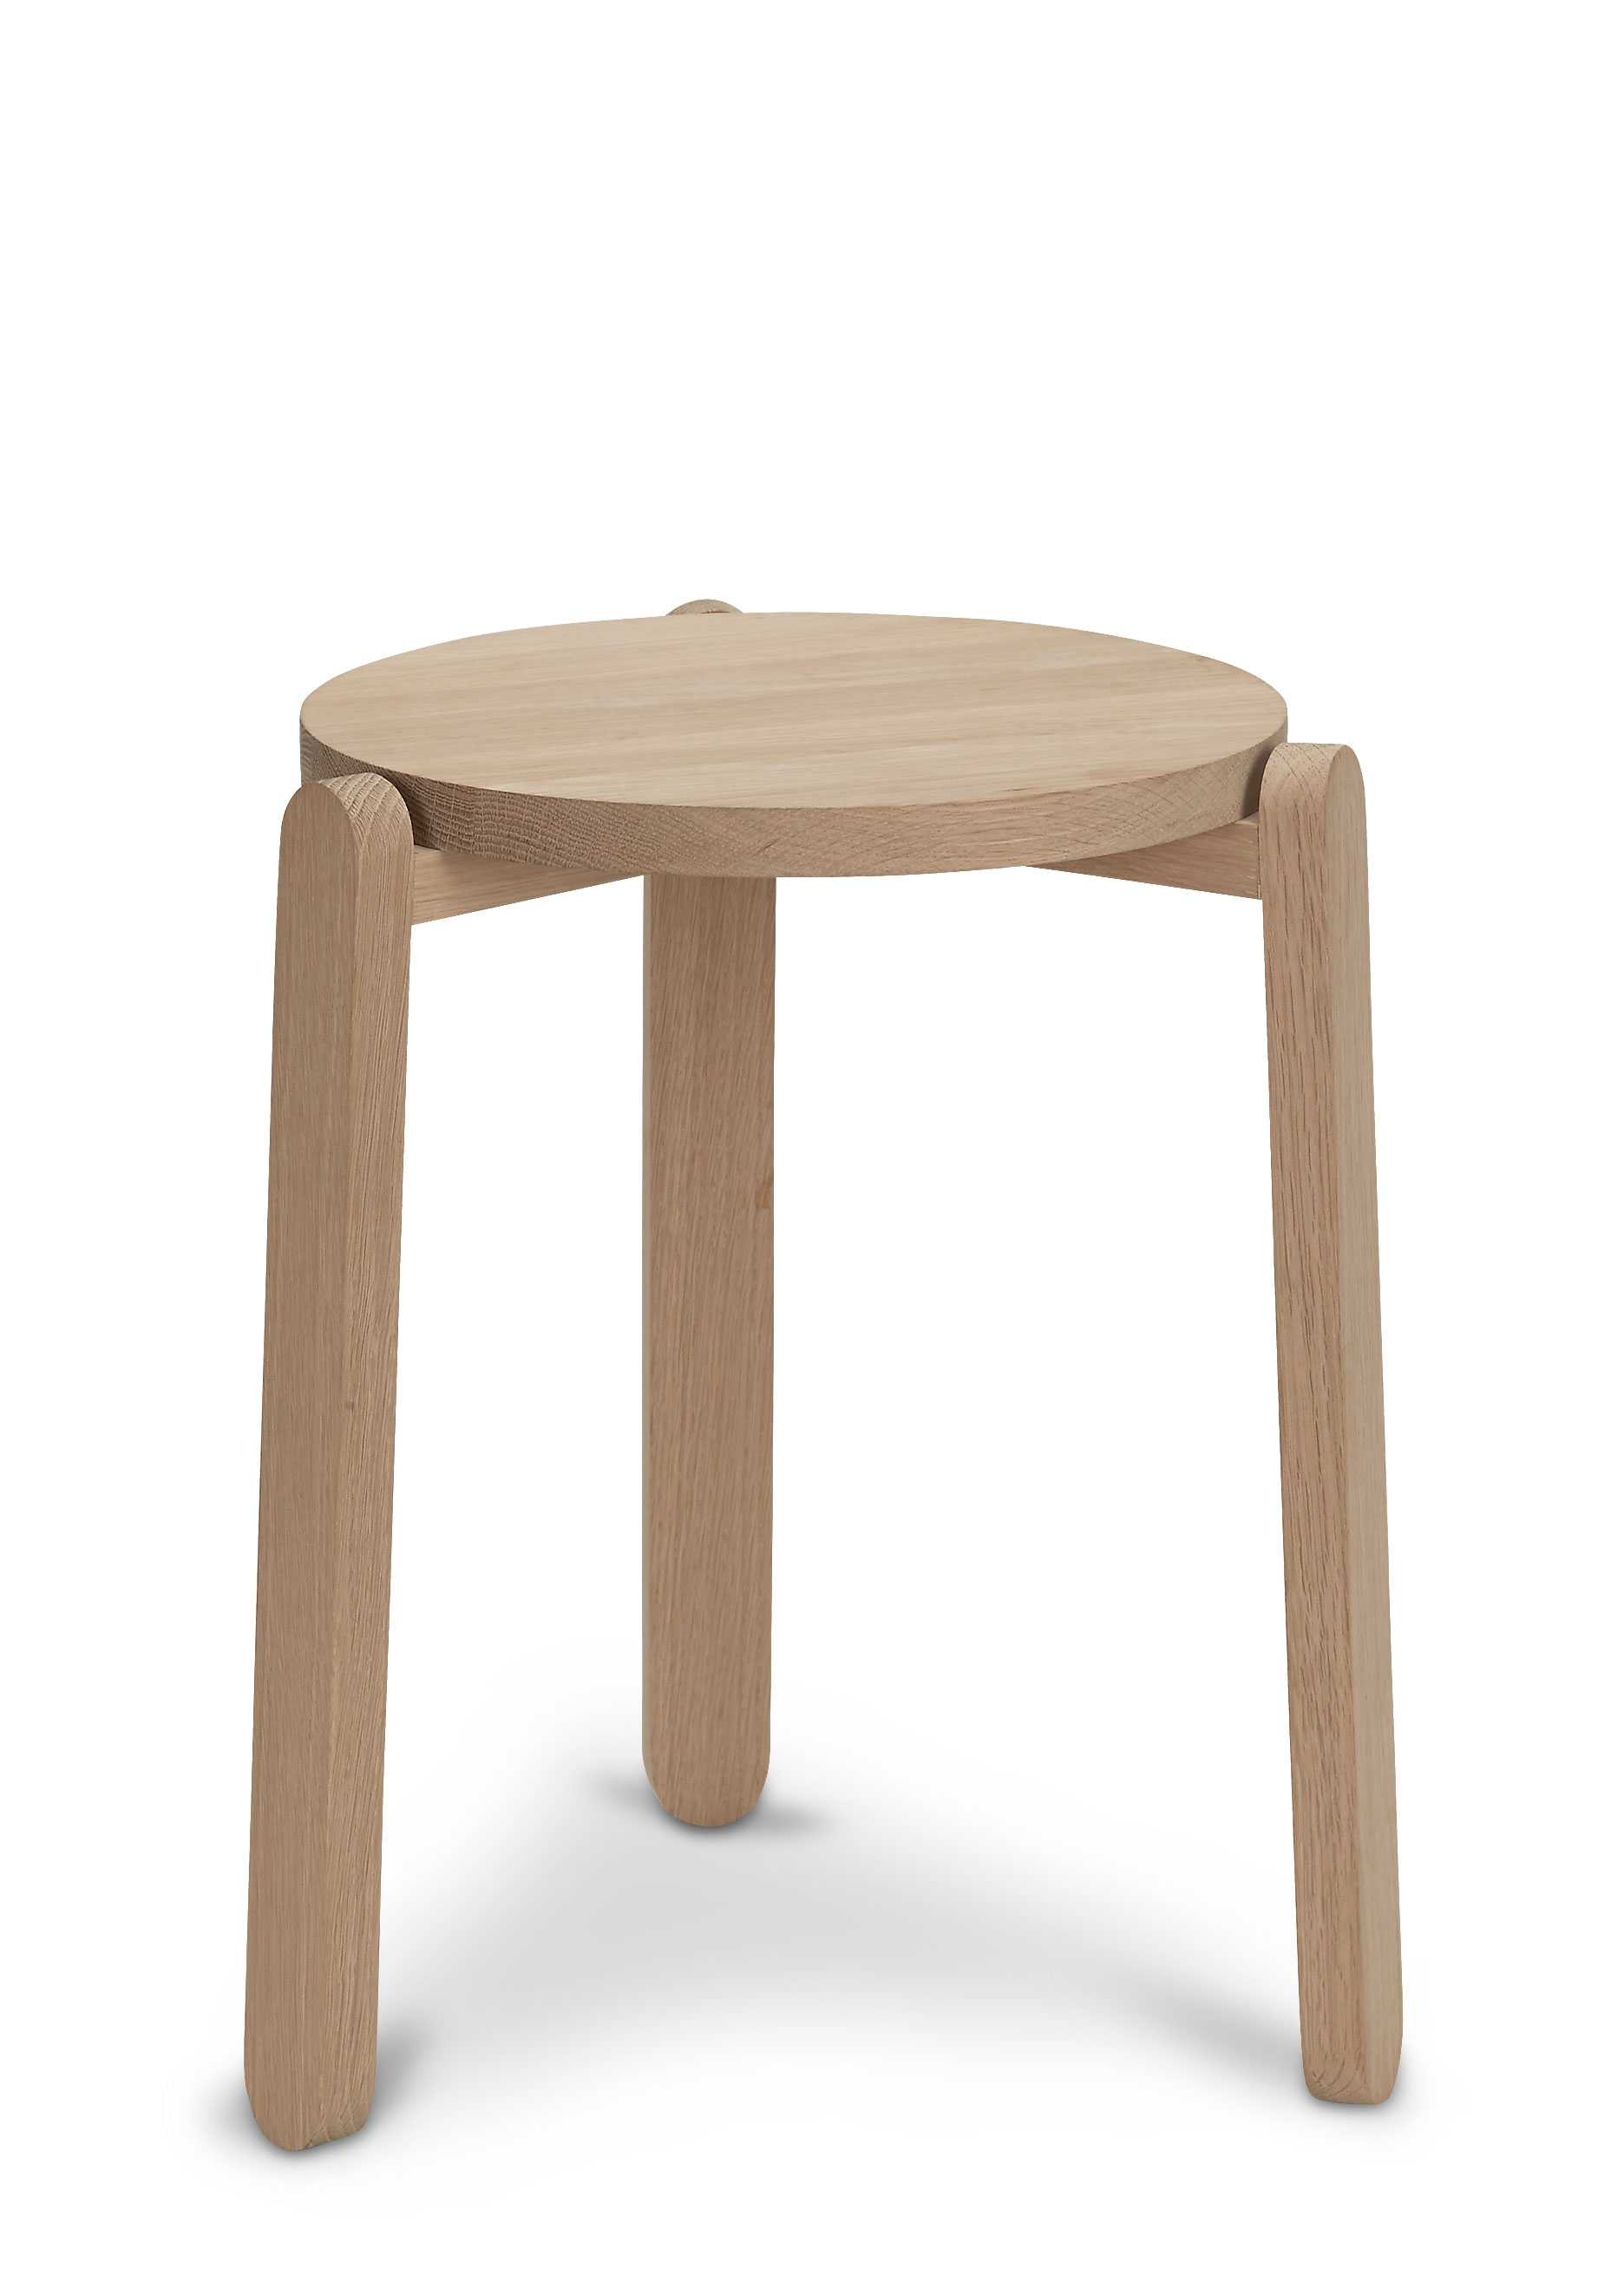 1930252-Nomad-Stool-Oak-01